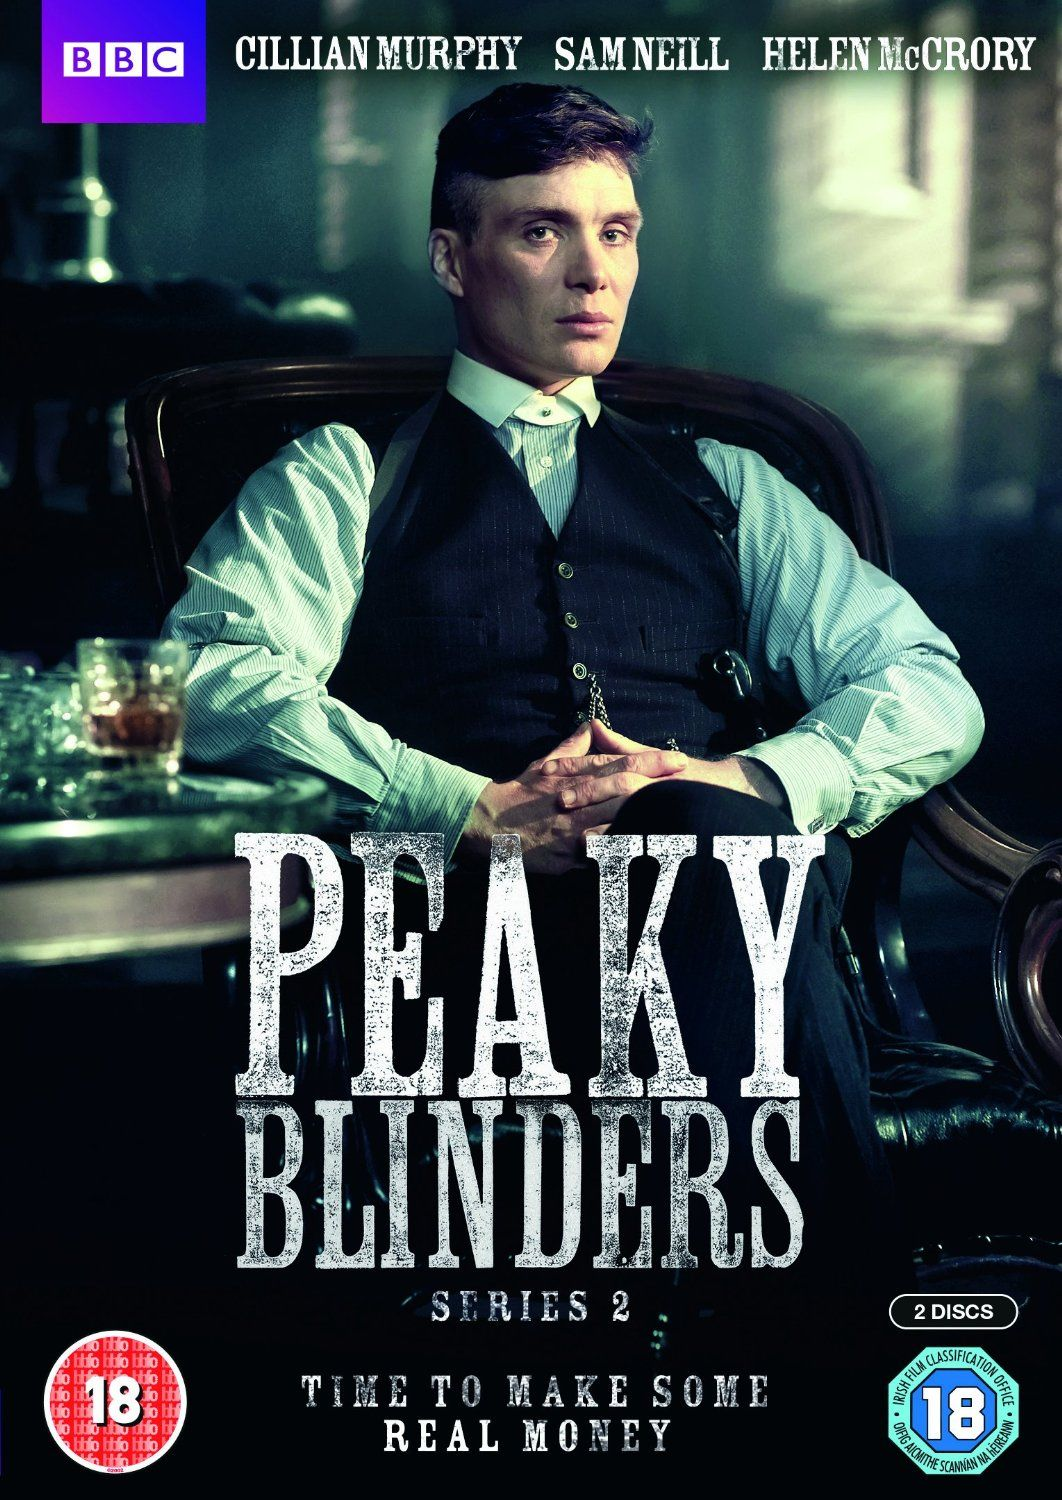 Peaky Blinders DVD import UK S2